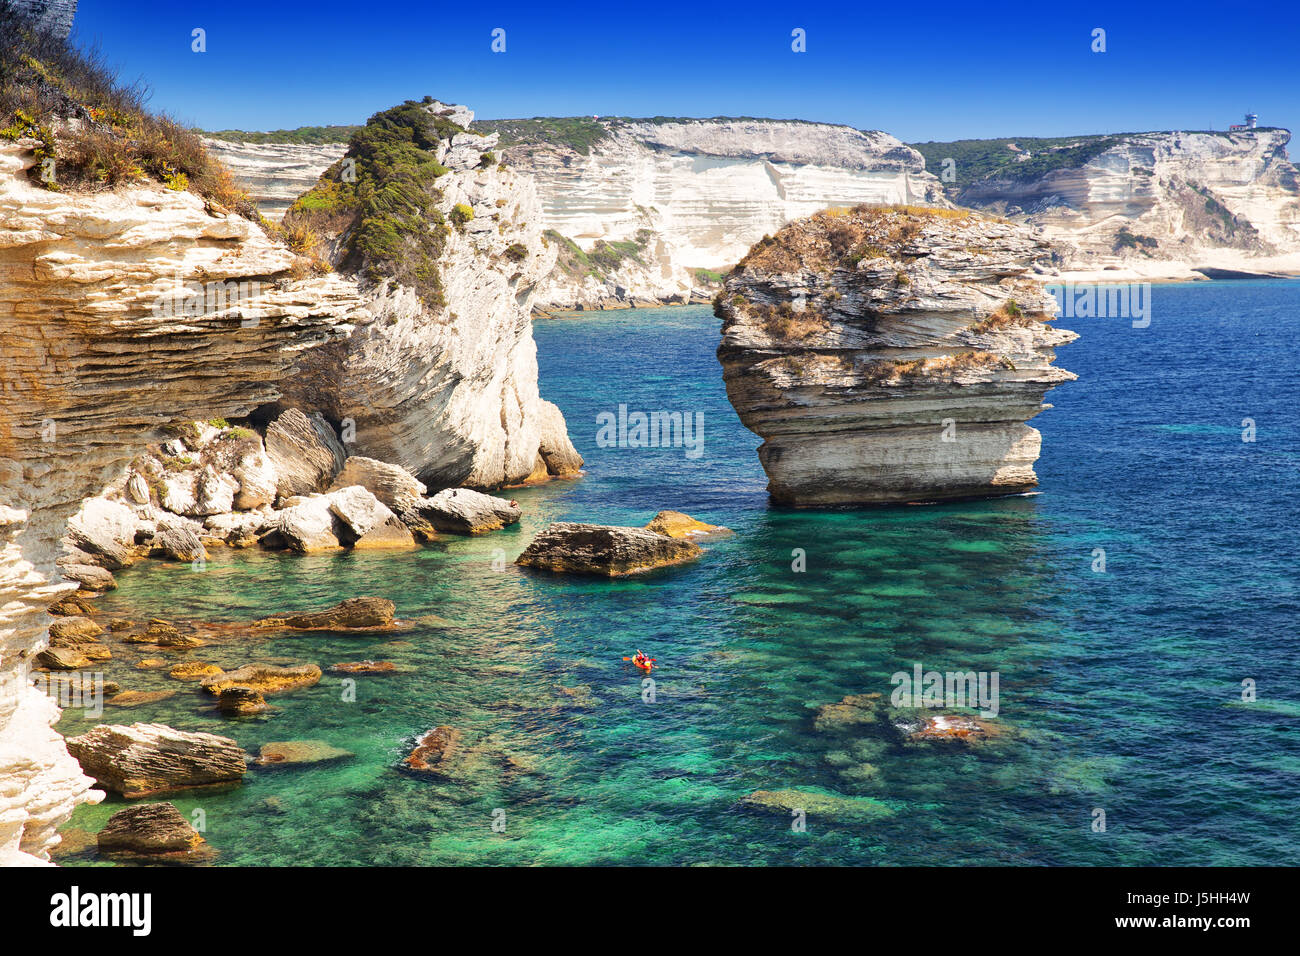 Young couple kayaking near Bonifacio town on beautiful white rock cliff with sea bay, Corsica, France, Europe. - Stock Image